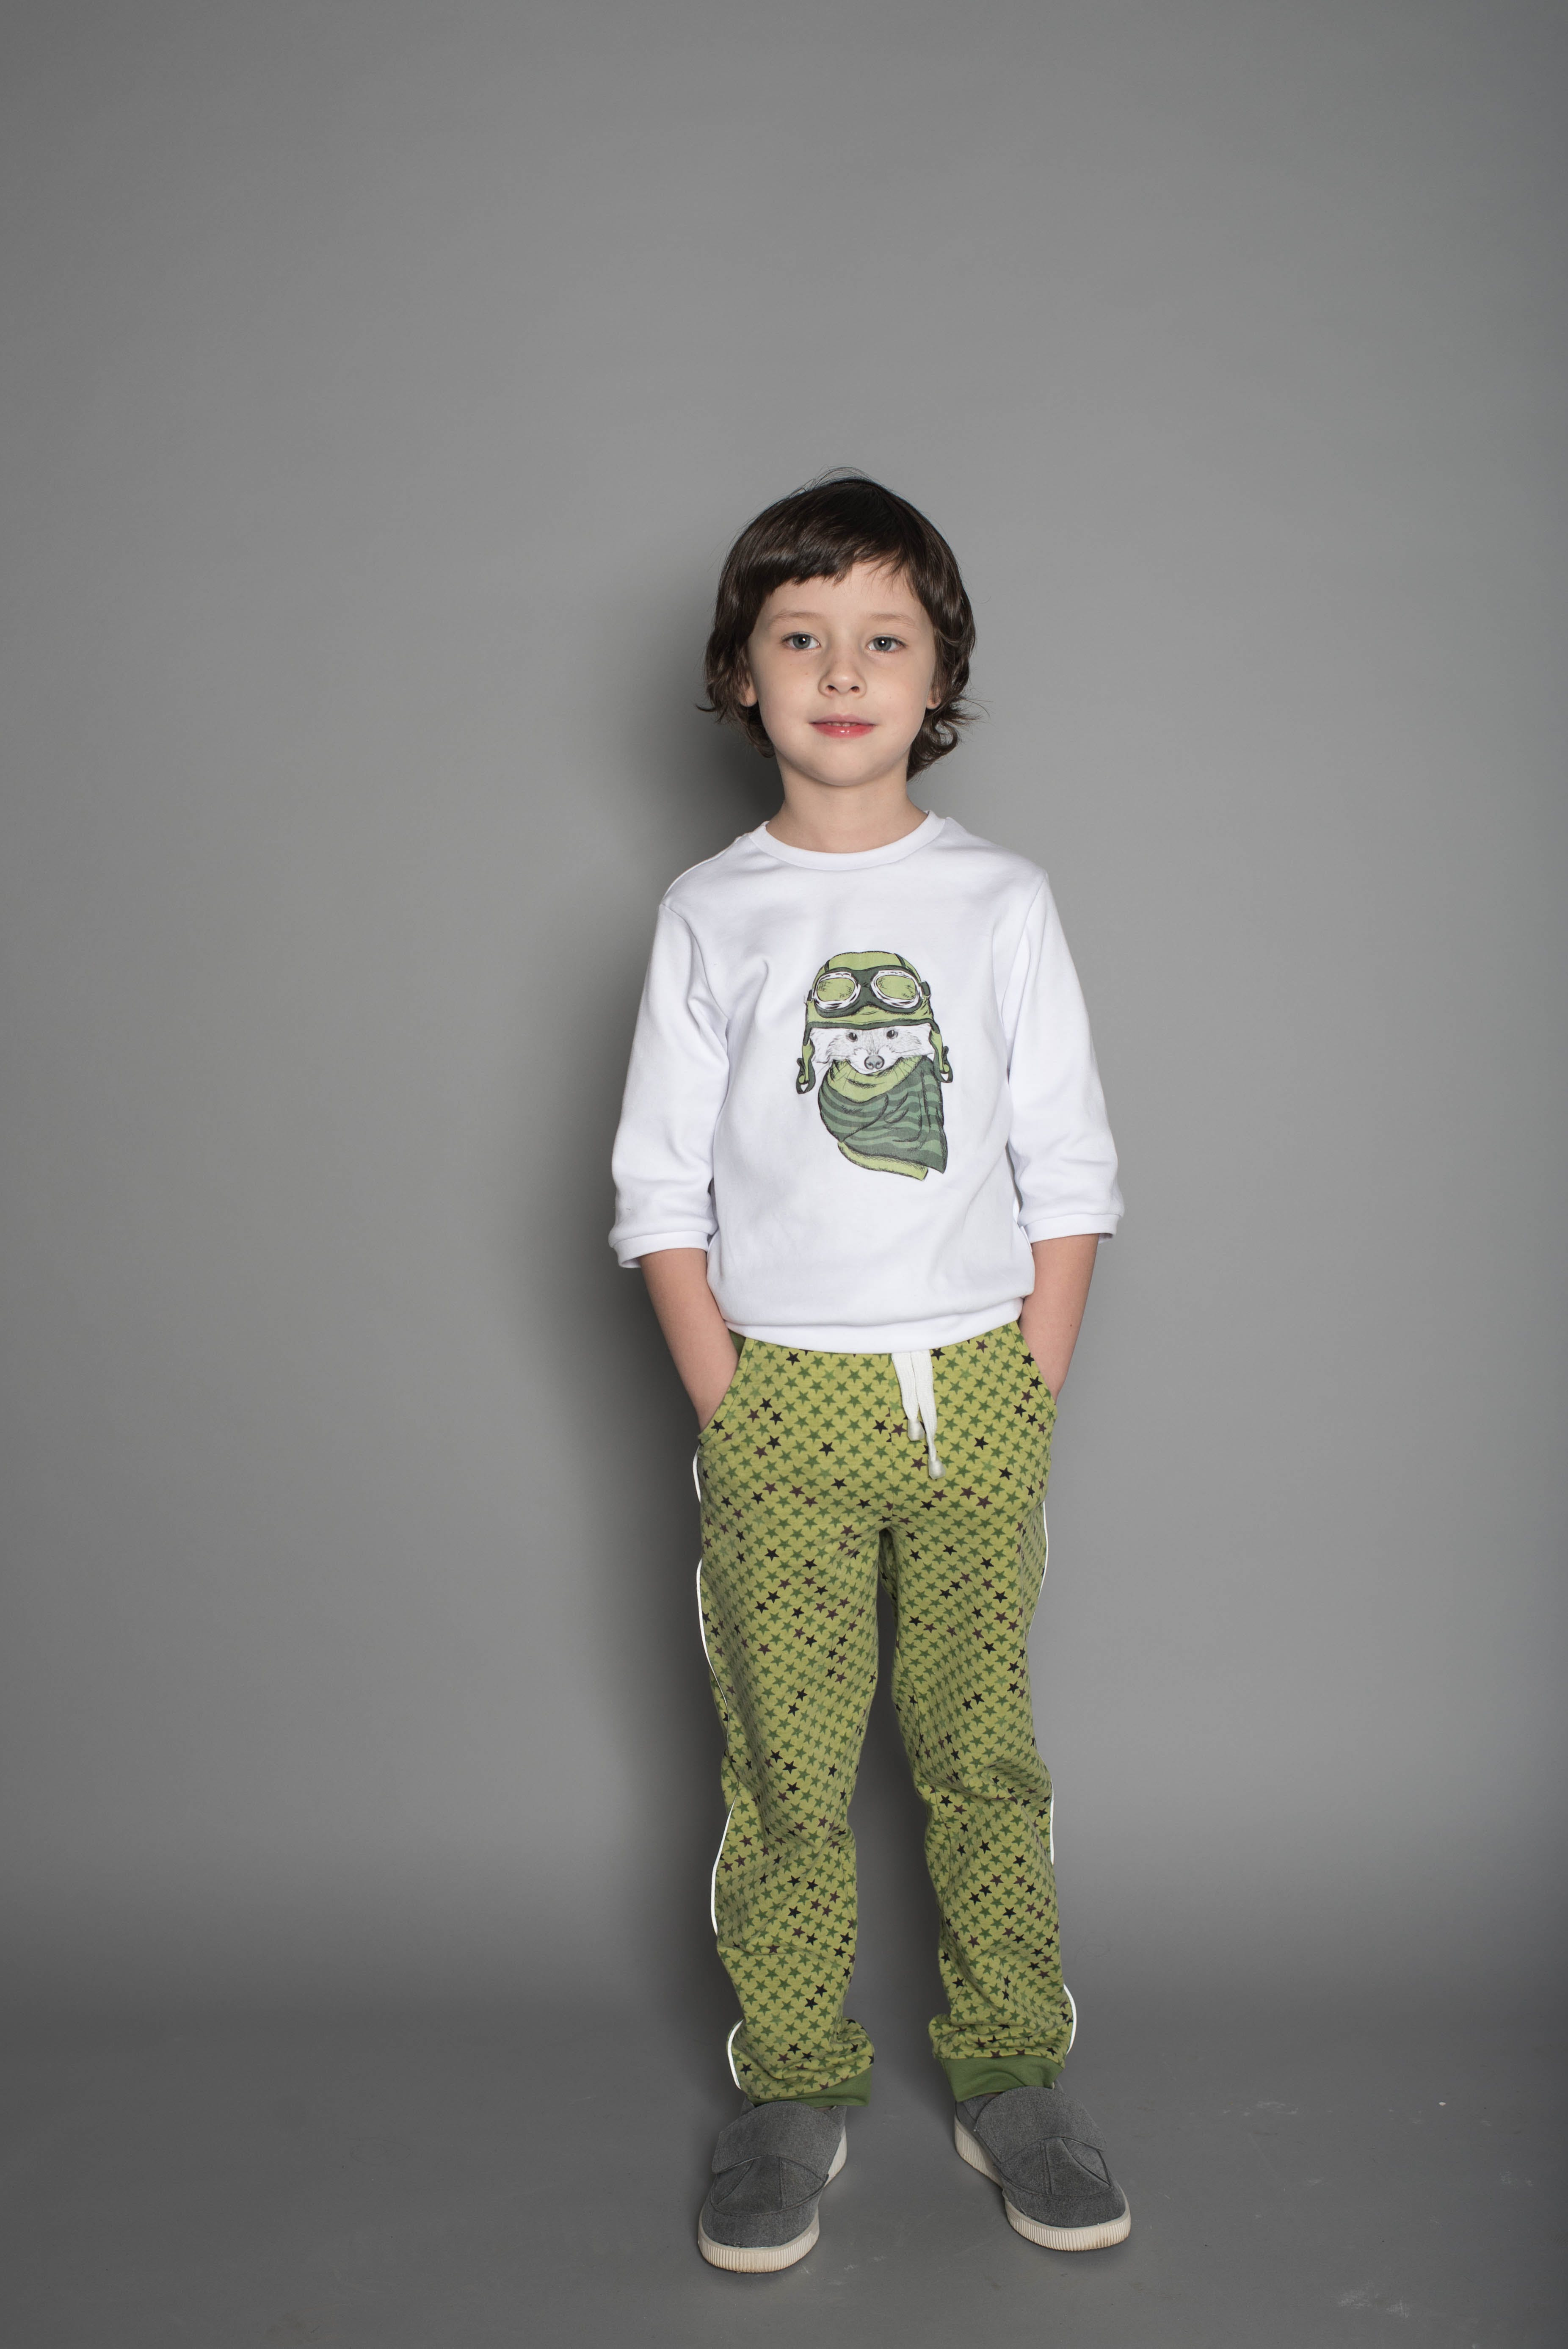 Boy Wearing White and Green T-shirt and Green Pants